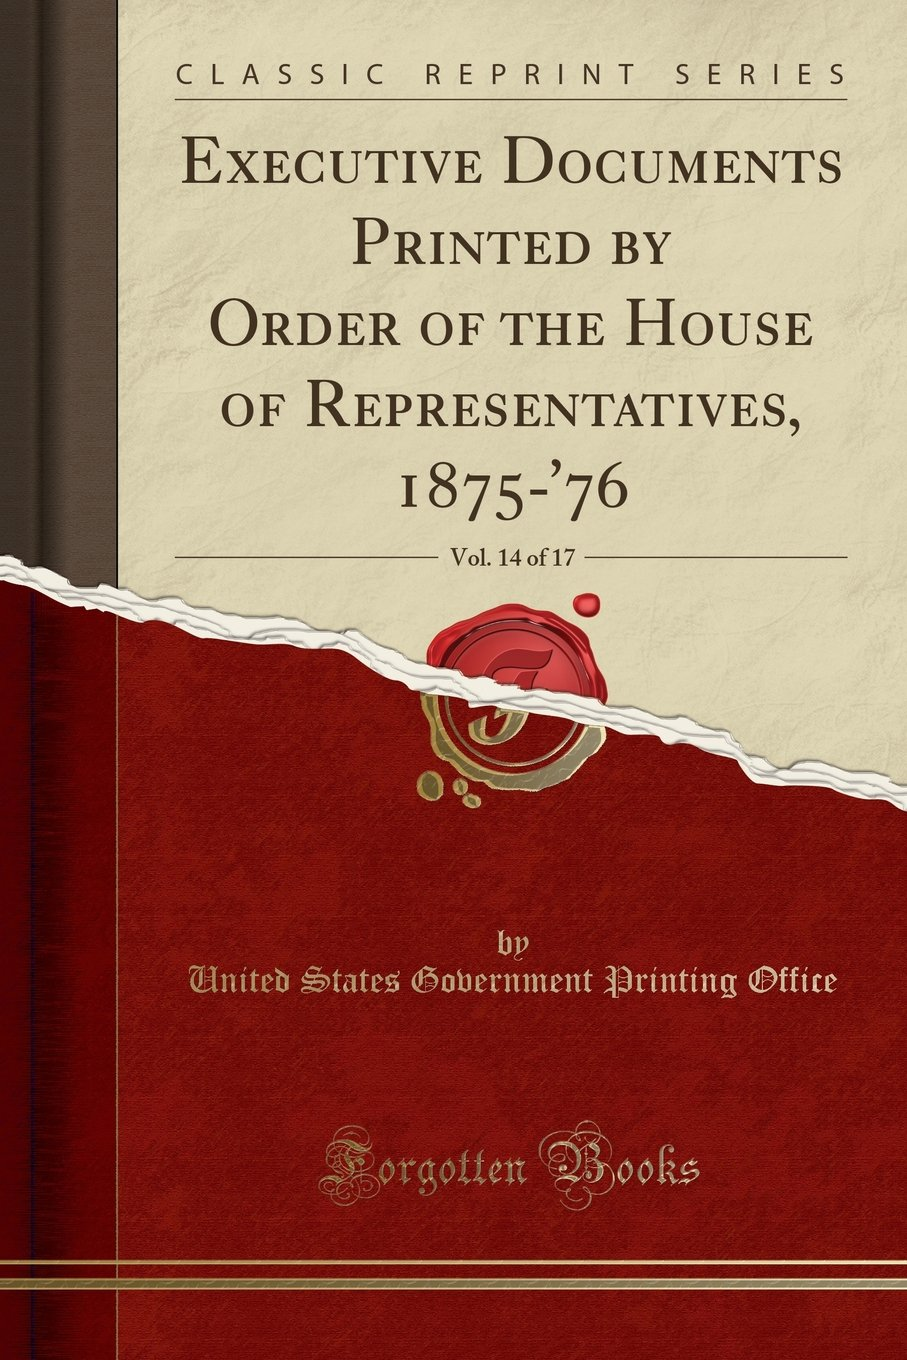 Executive Documents Printed by Order of the House of Representatives, 1875-'76, Vol. 14 of 17 (Classic Reprint) ePub fb2 ebook